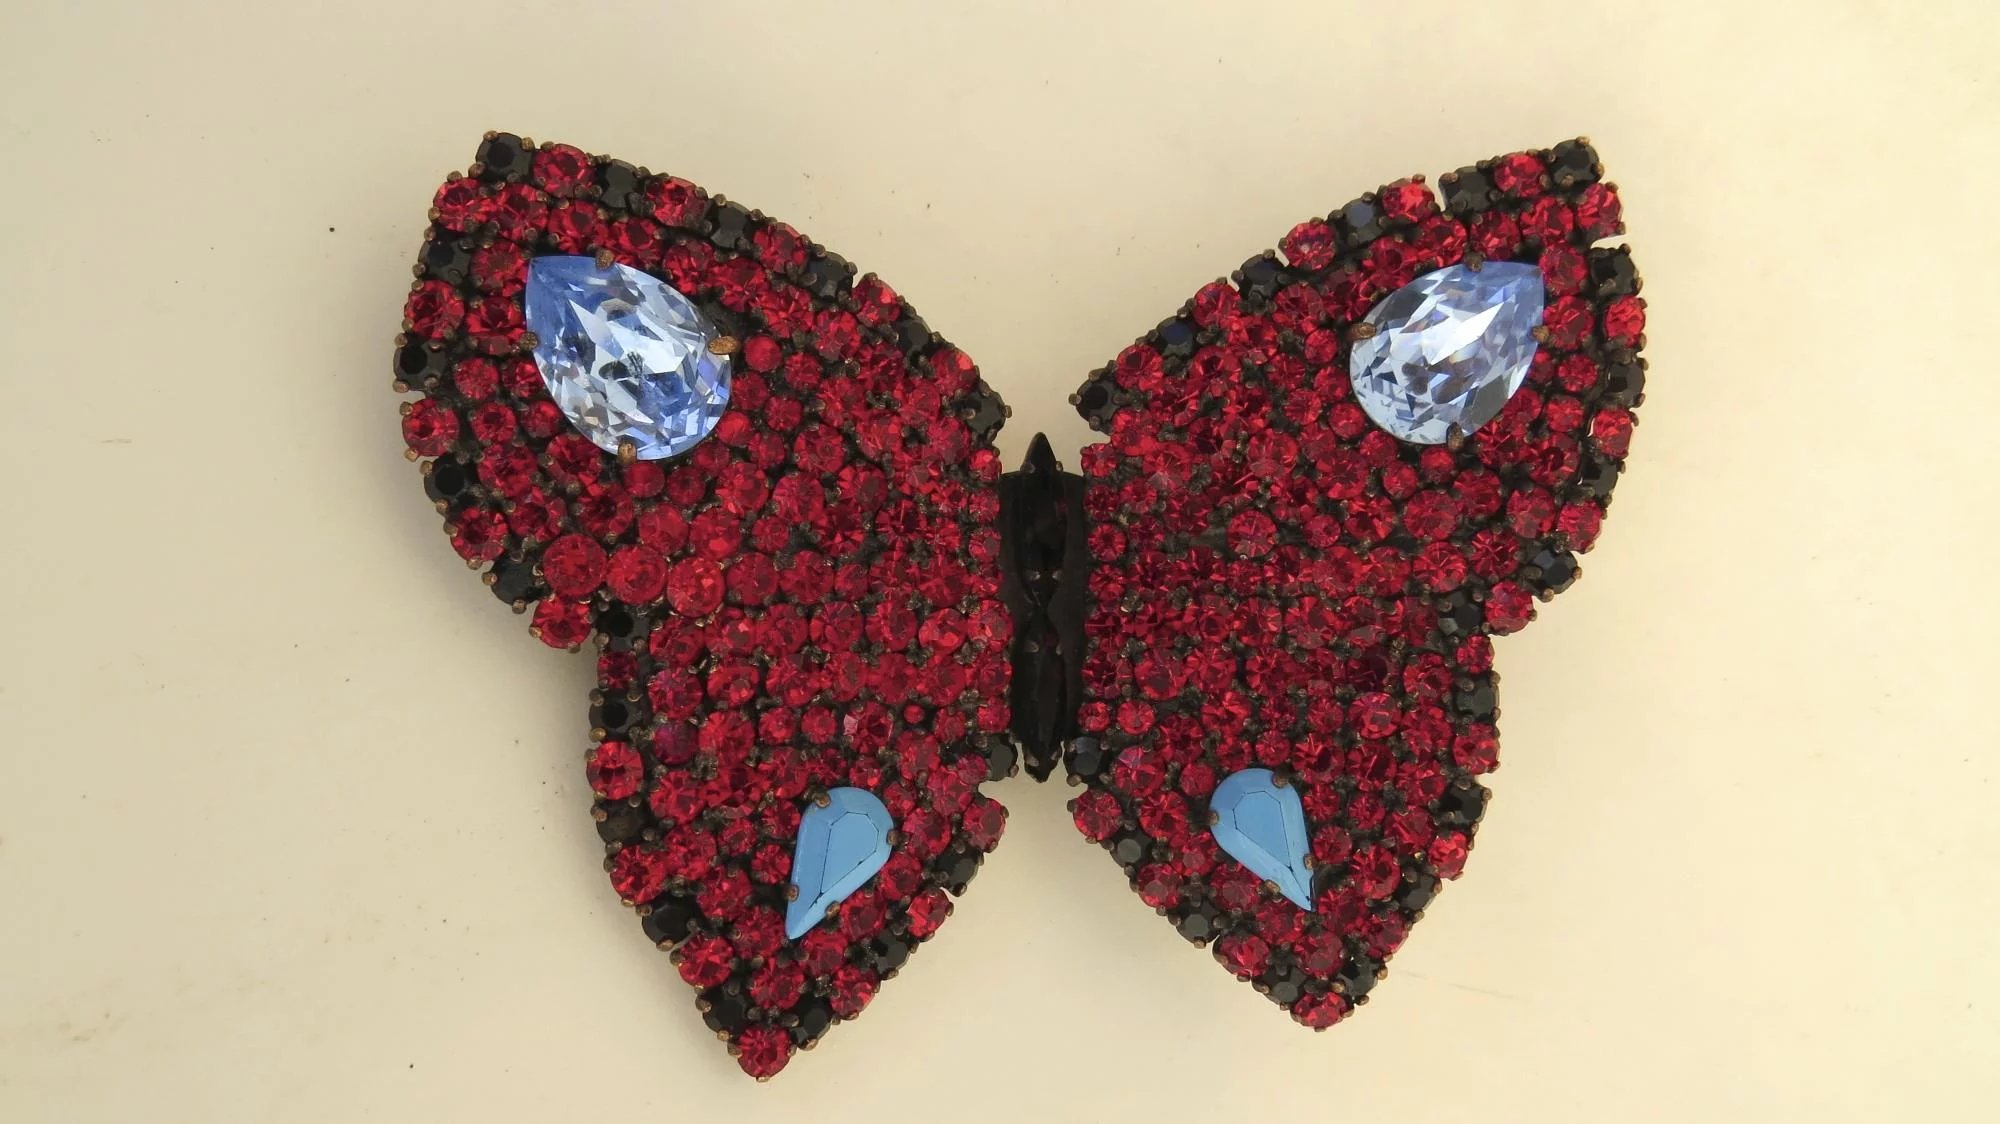 6a8916b70d8 Vintage YSL Yves Saint Laurent Rhinestone Large Butterfly Brooch Pin Signed  Designer. Click to expand